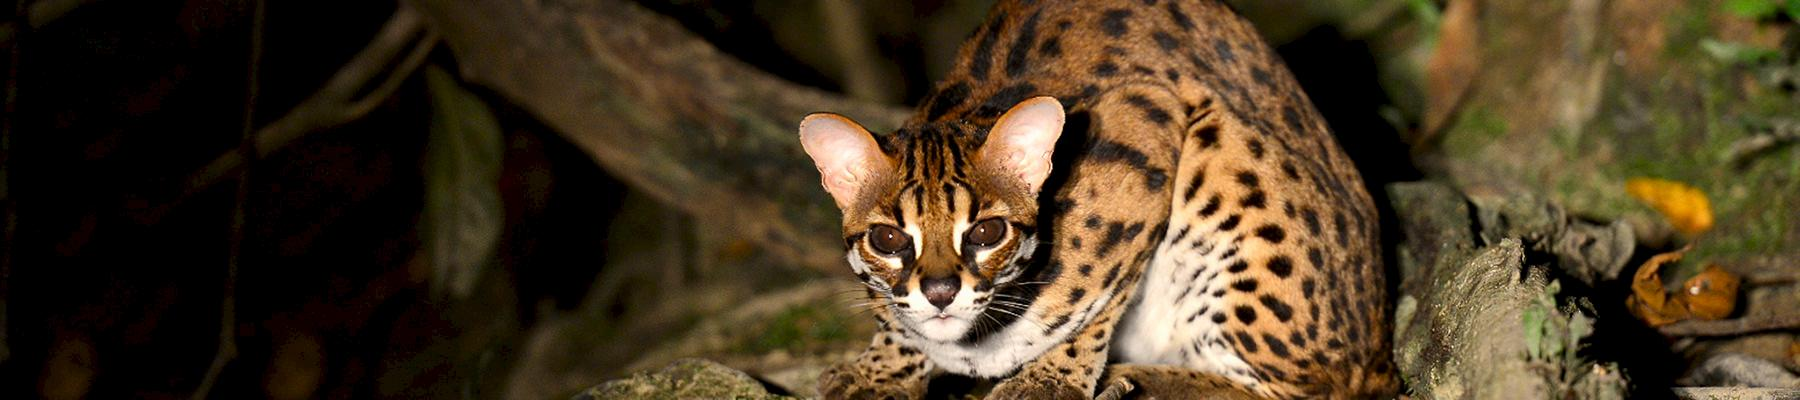 A Leopard Cat Prionailurus bengalensis, was among the animals seized © Mark Louis Benedict / CC Generic 2.0